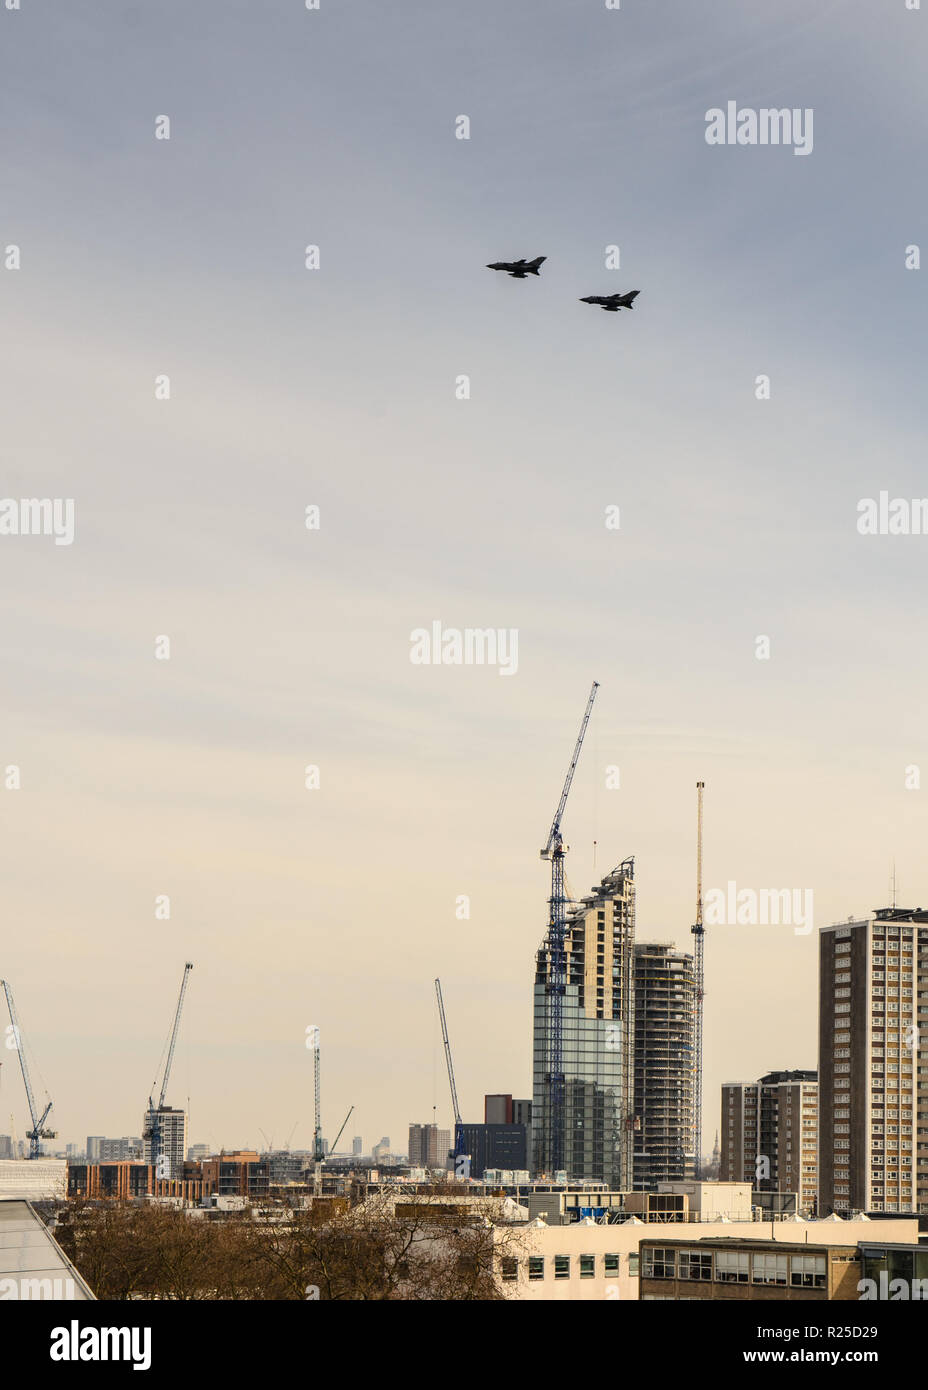 London, England, UK - March 13, 2015: Fighter jets race over North London as part of a commemorative flypast. - Stock Image